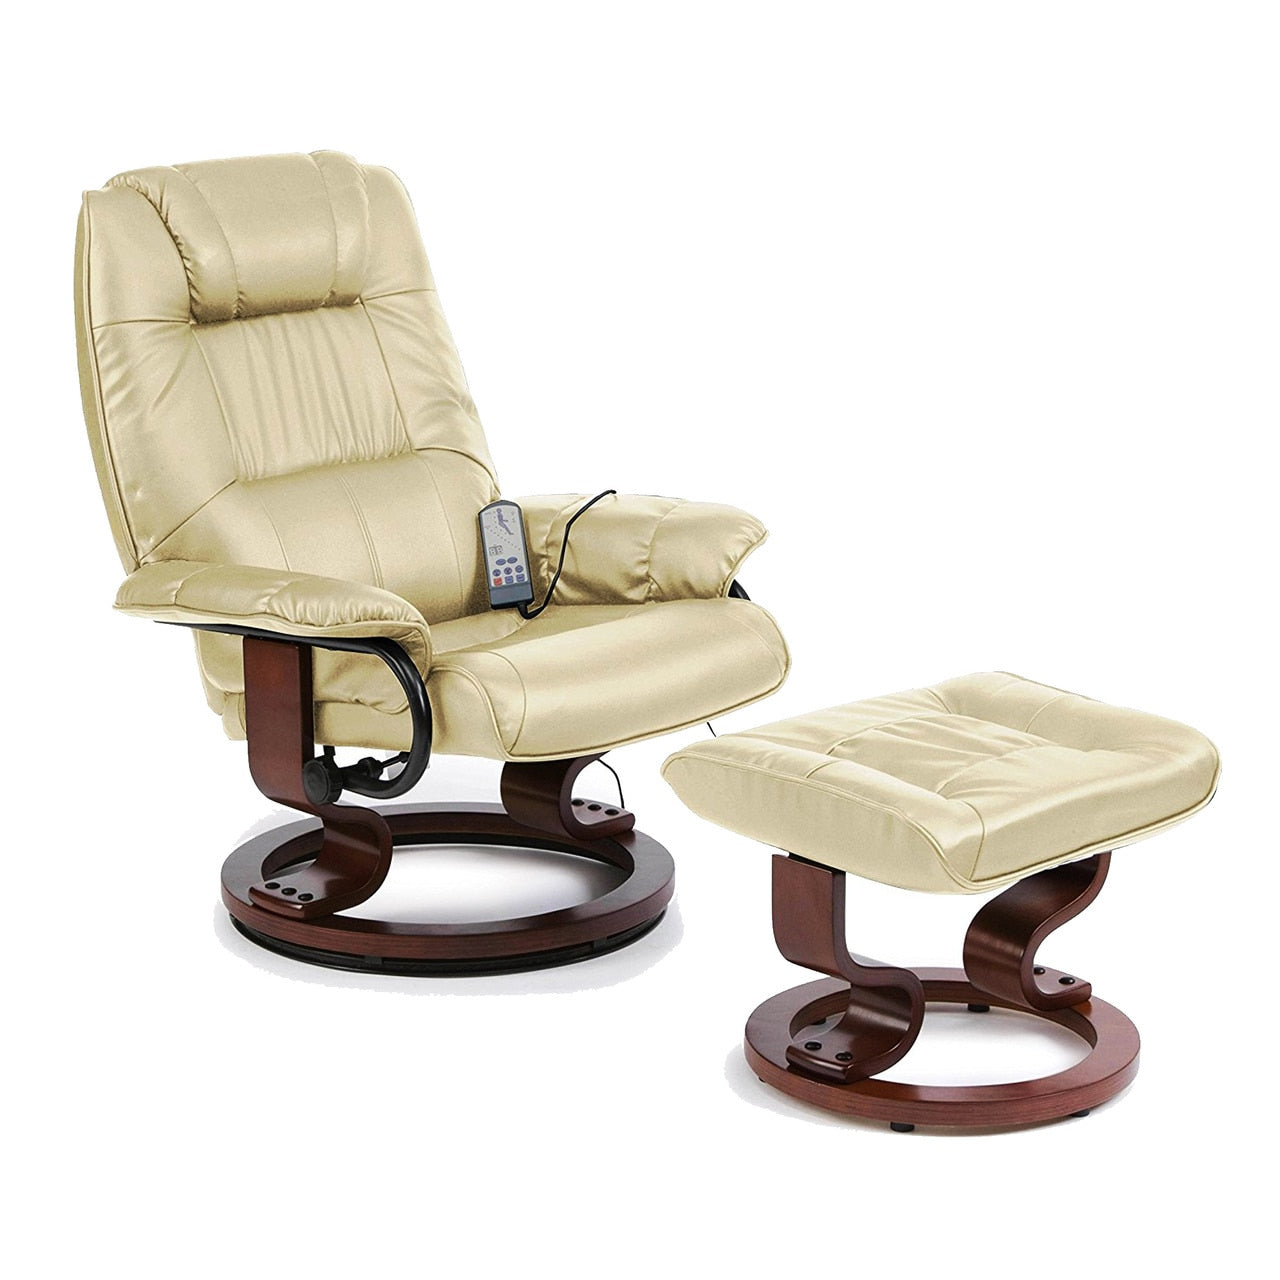 Napoli 360 Swivel Heated Massage Recliner Chair